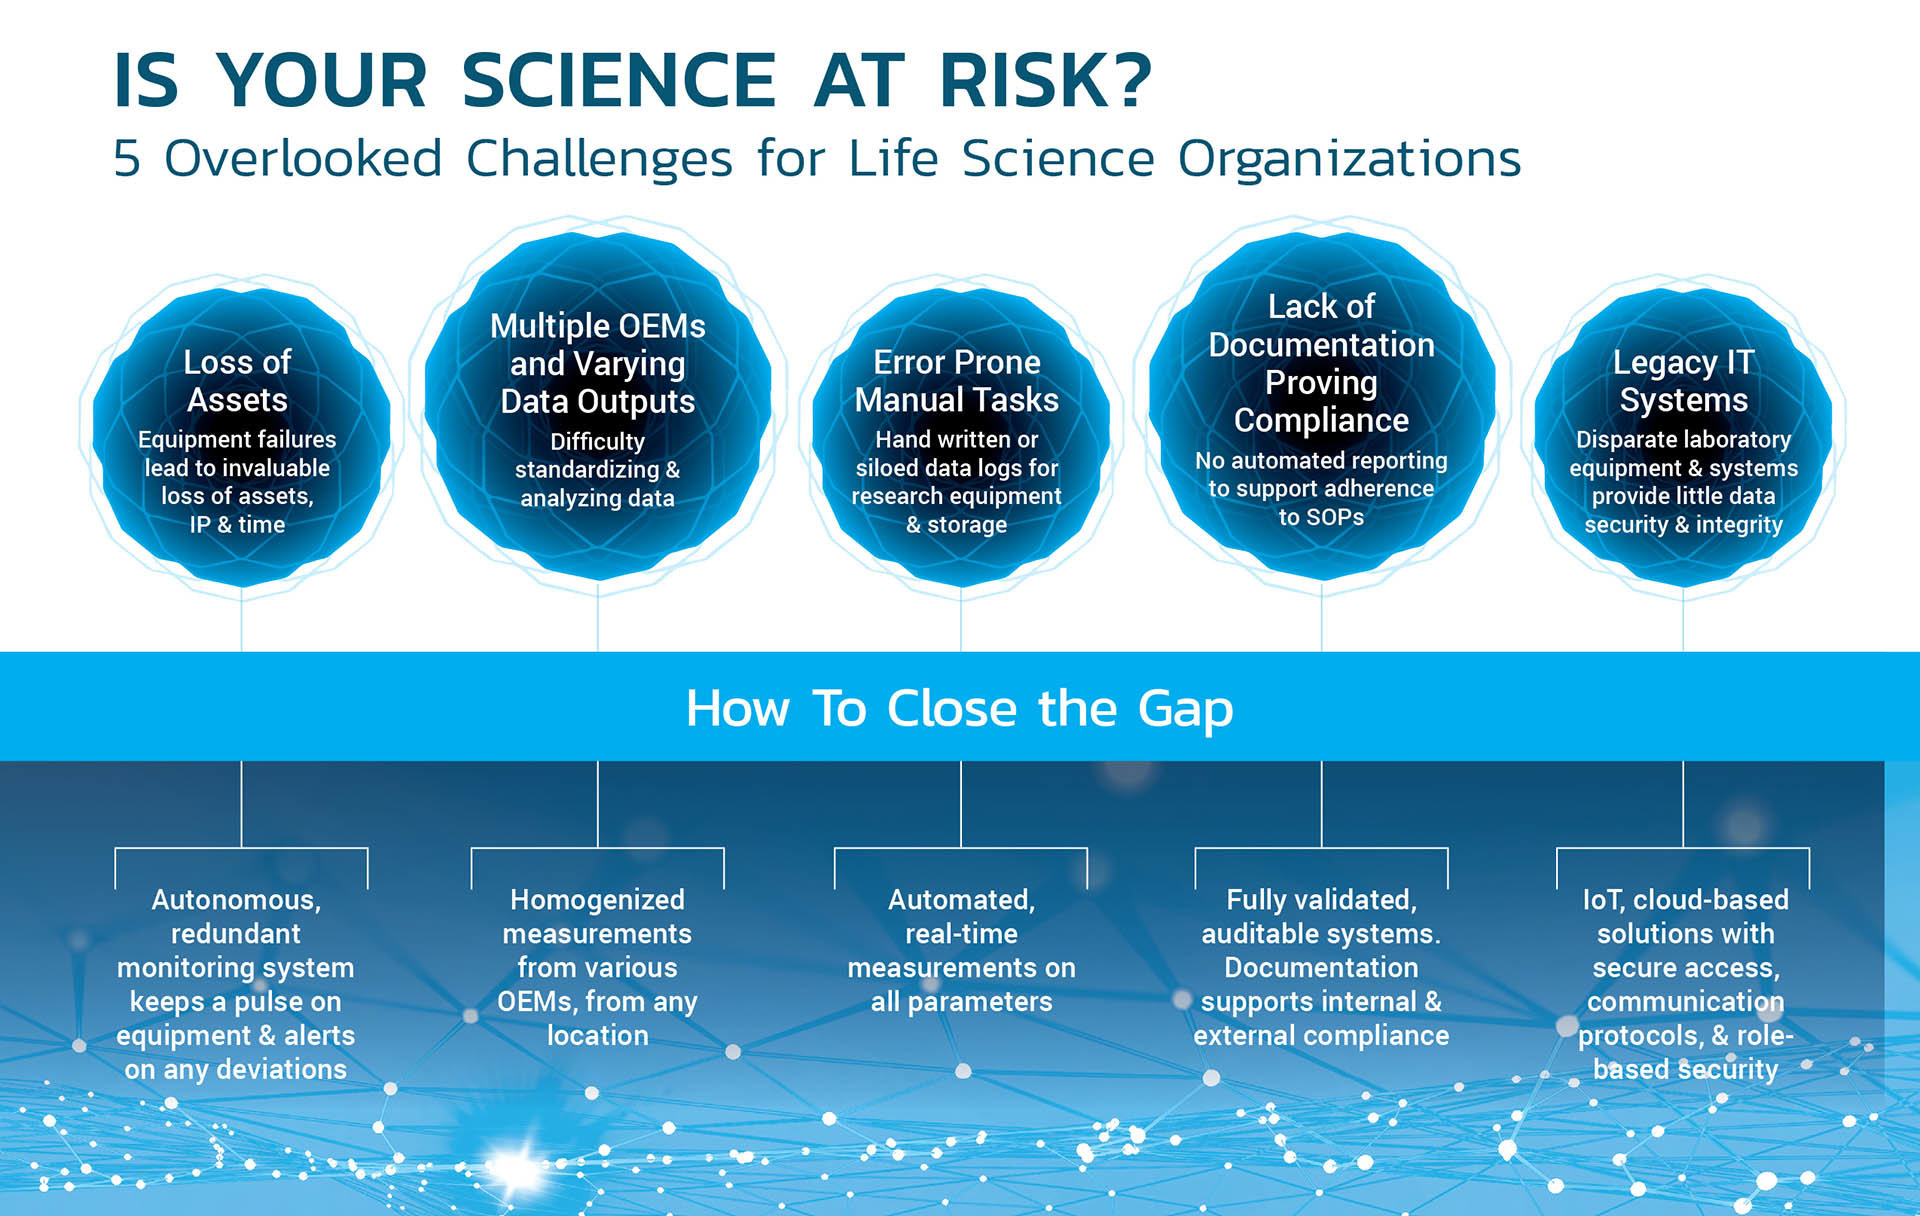 overlooked challenges for life science organizations